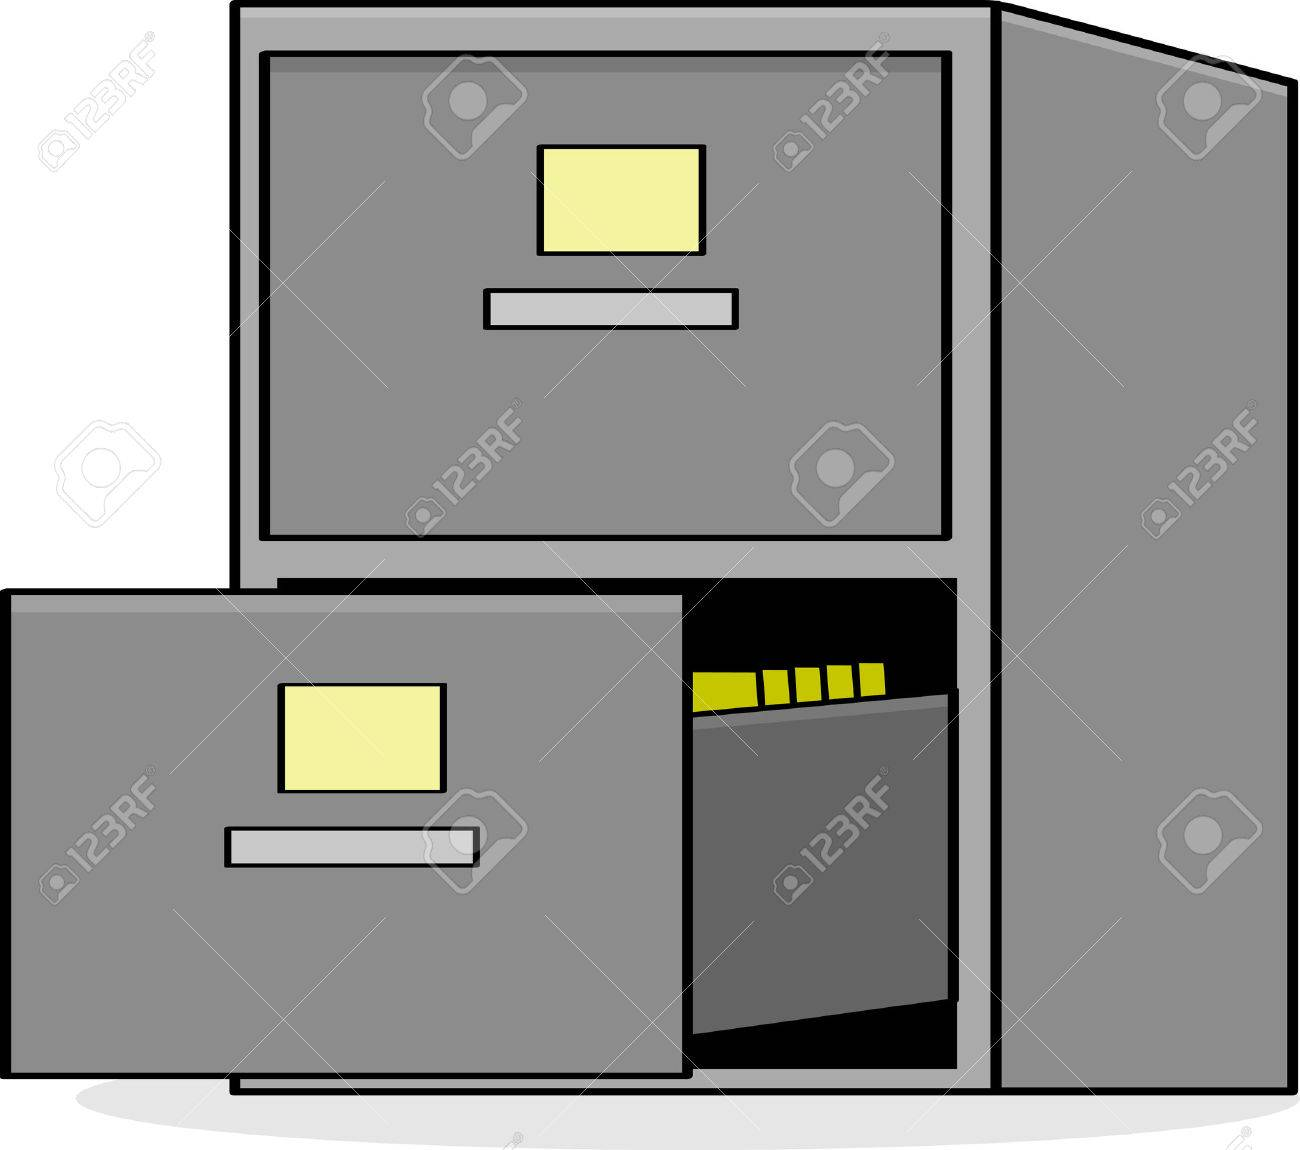 Cartoon Illustration Showing A Metal File Cabinet With The Bottom Drawer  Open Stock Vector   27569237